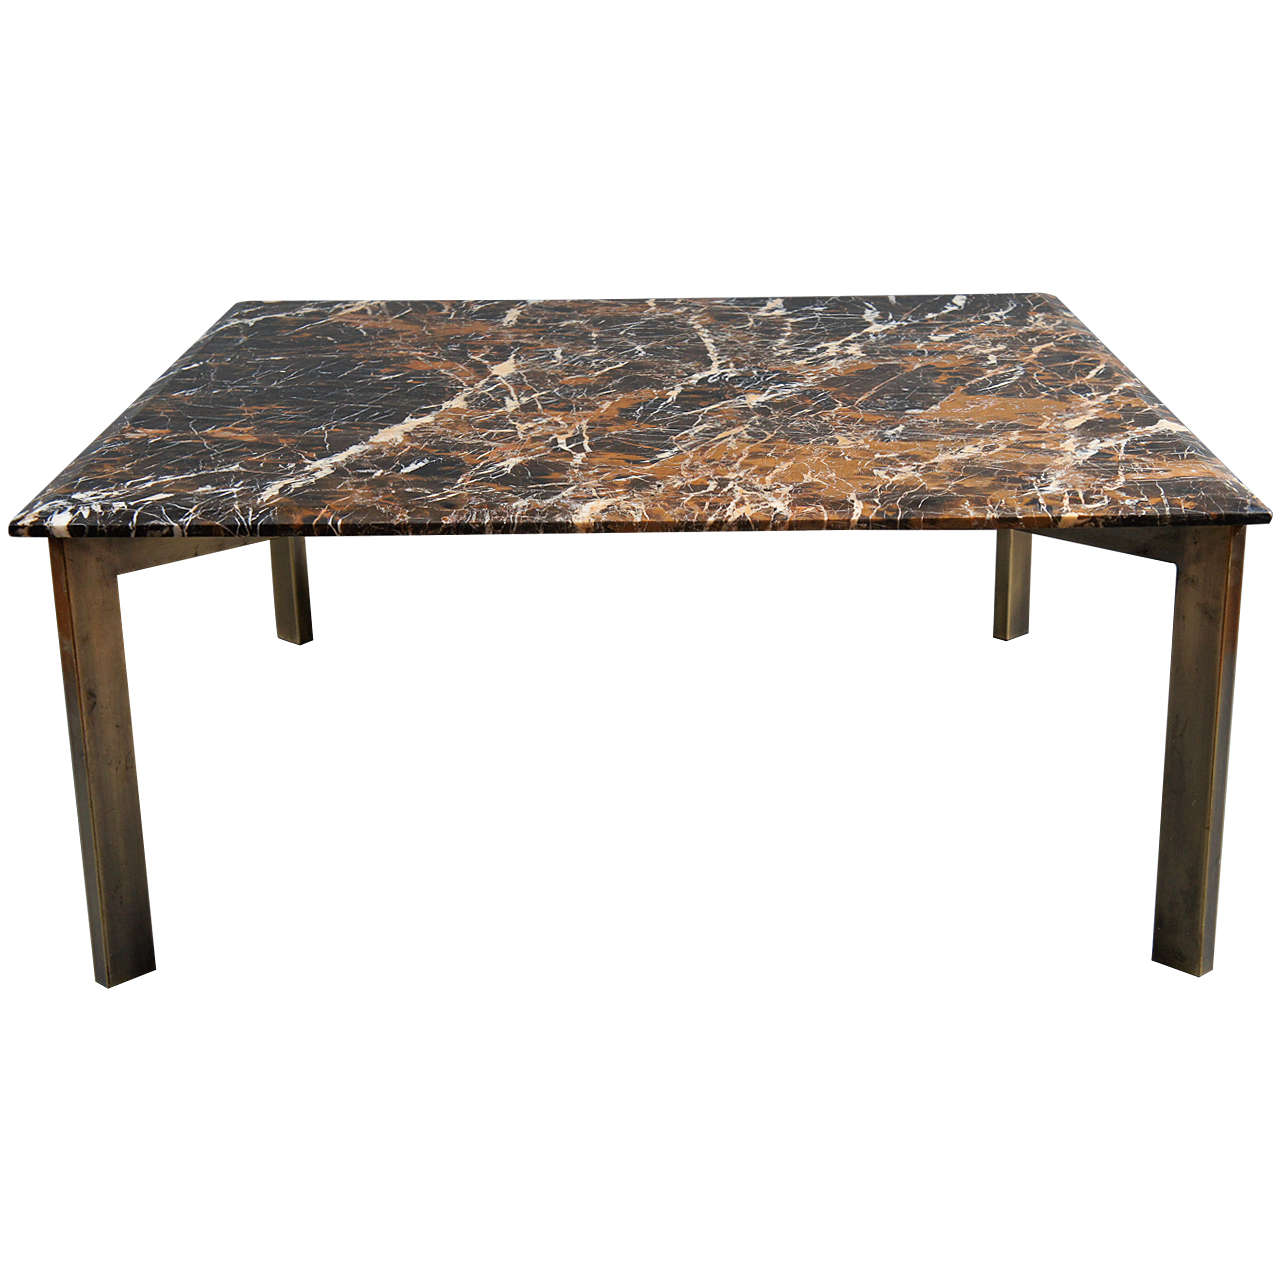 Marble Coffee Table For Sale Singapore: Marble Cocktail Table For Sale At 1stdibs